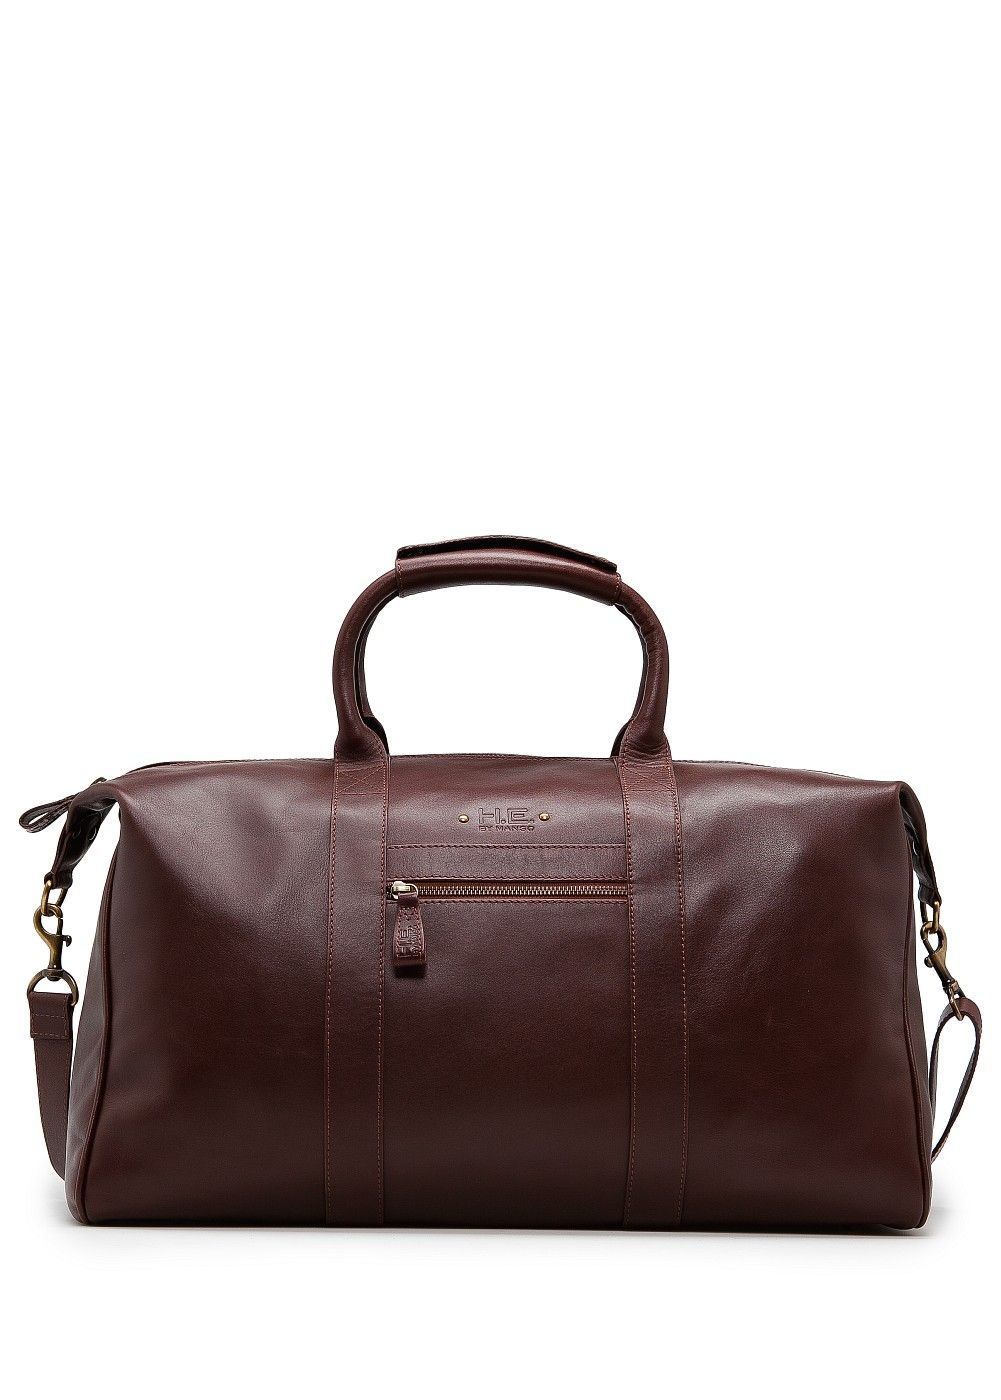 Man Weekend For Mango Bag Leather Brown Menleather In uOXkZiP